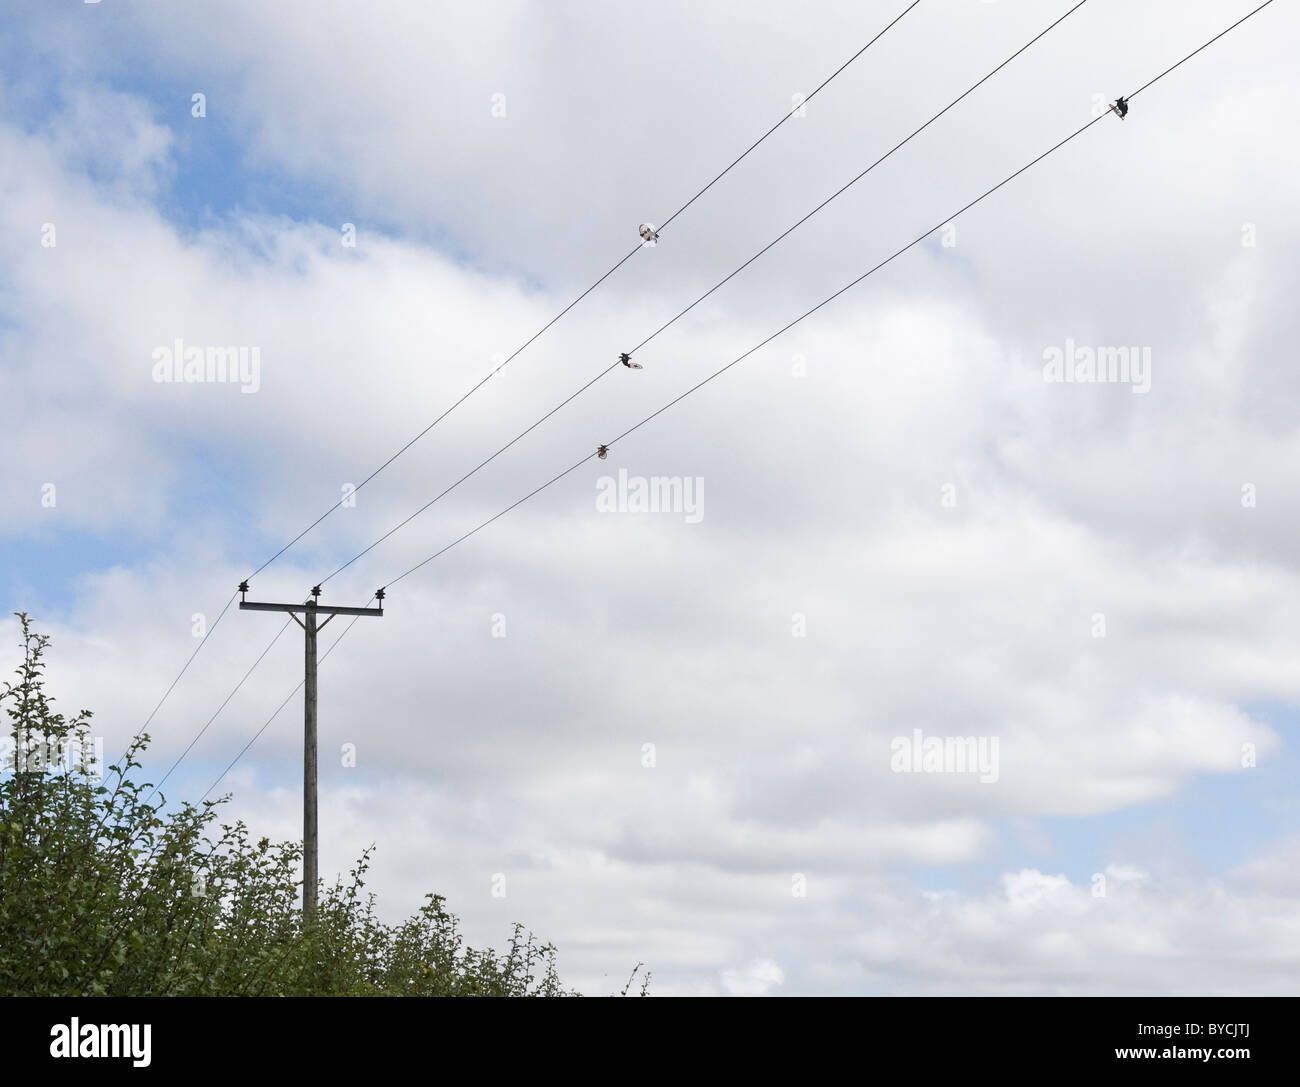 Overhead electricity cables with bird flight diverters attached to prevent water bird flying into the cables. (Grantham - Stock Image